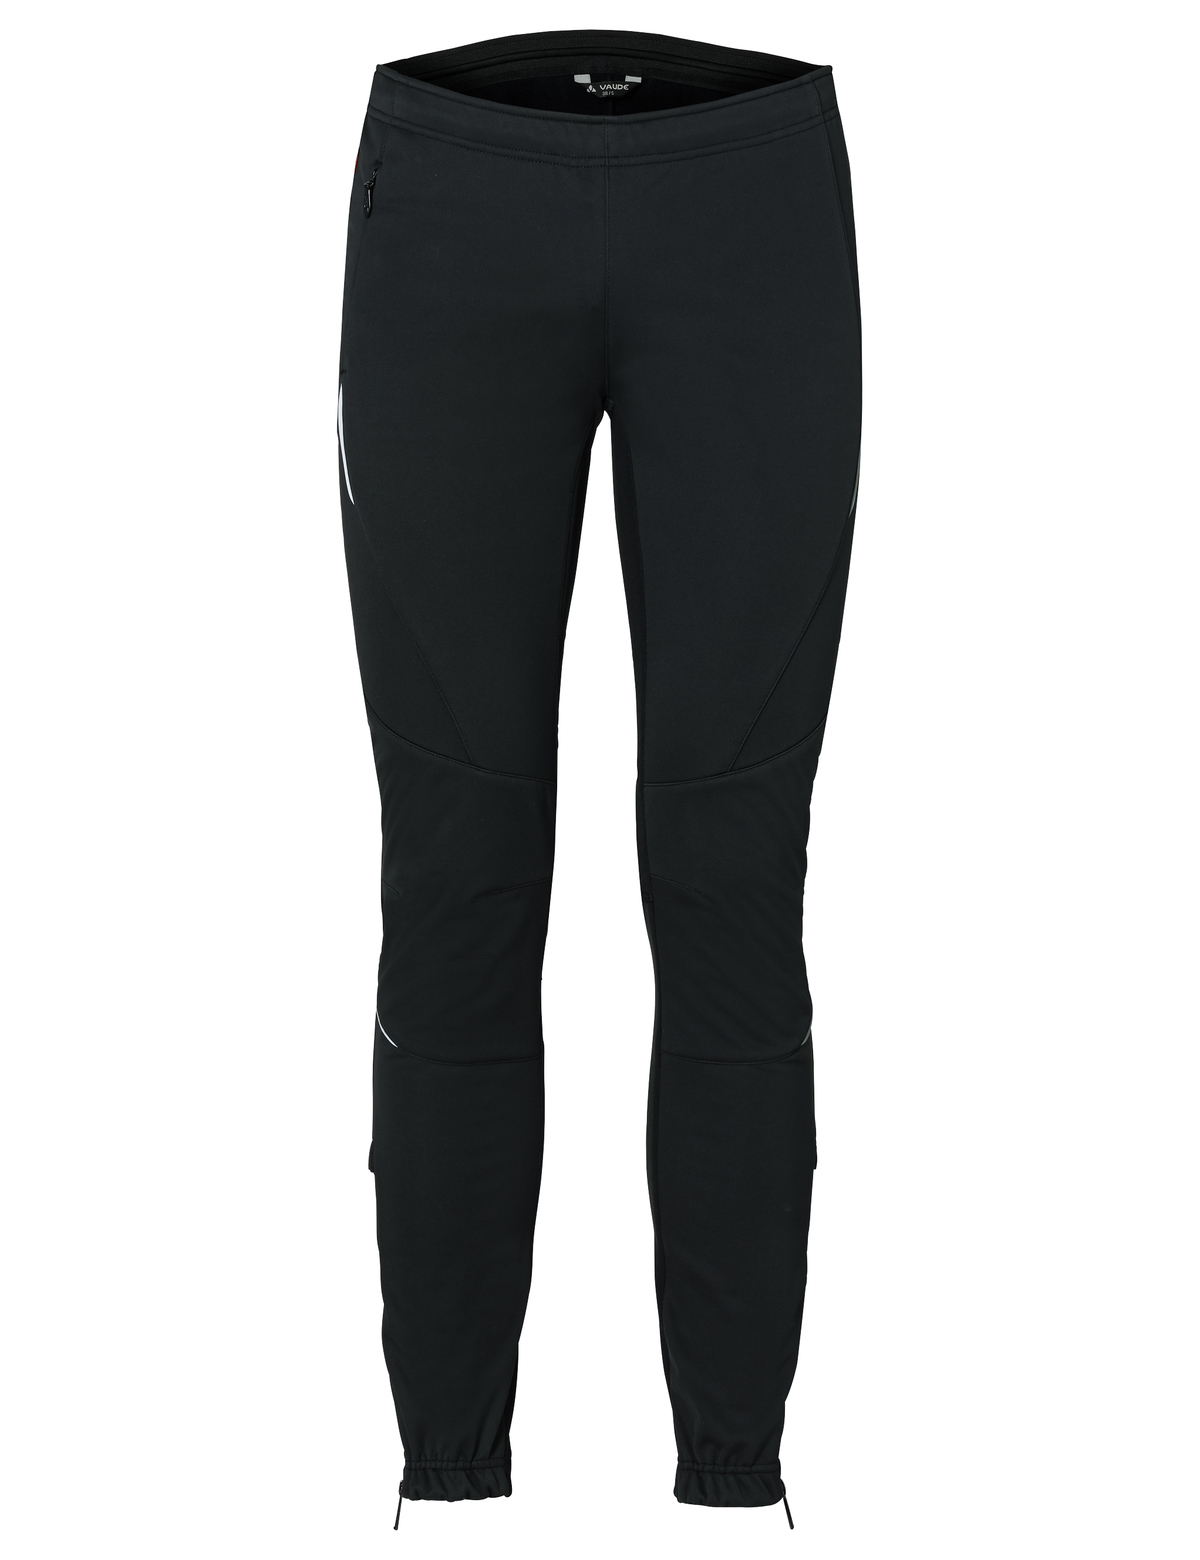 VAUDE Women´s Wintry Pants III black Größe 34 - schneider-sports